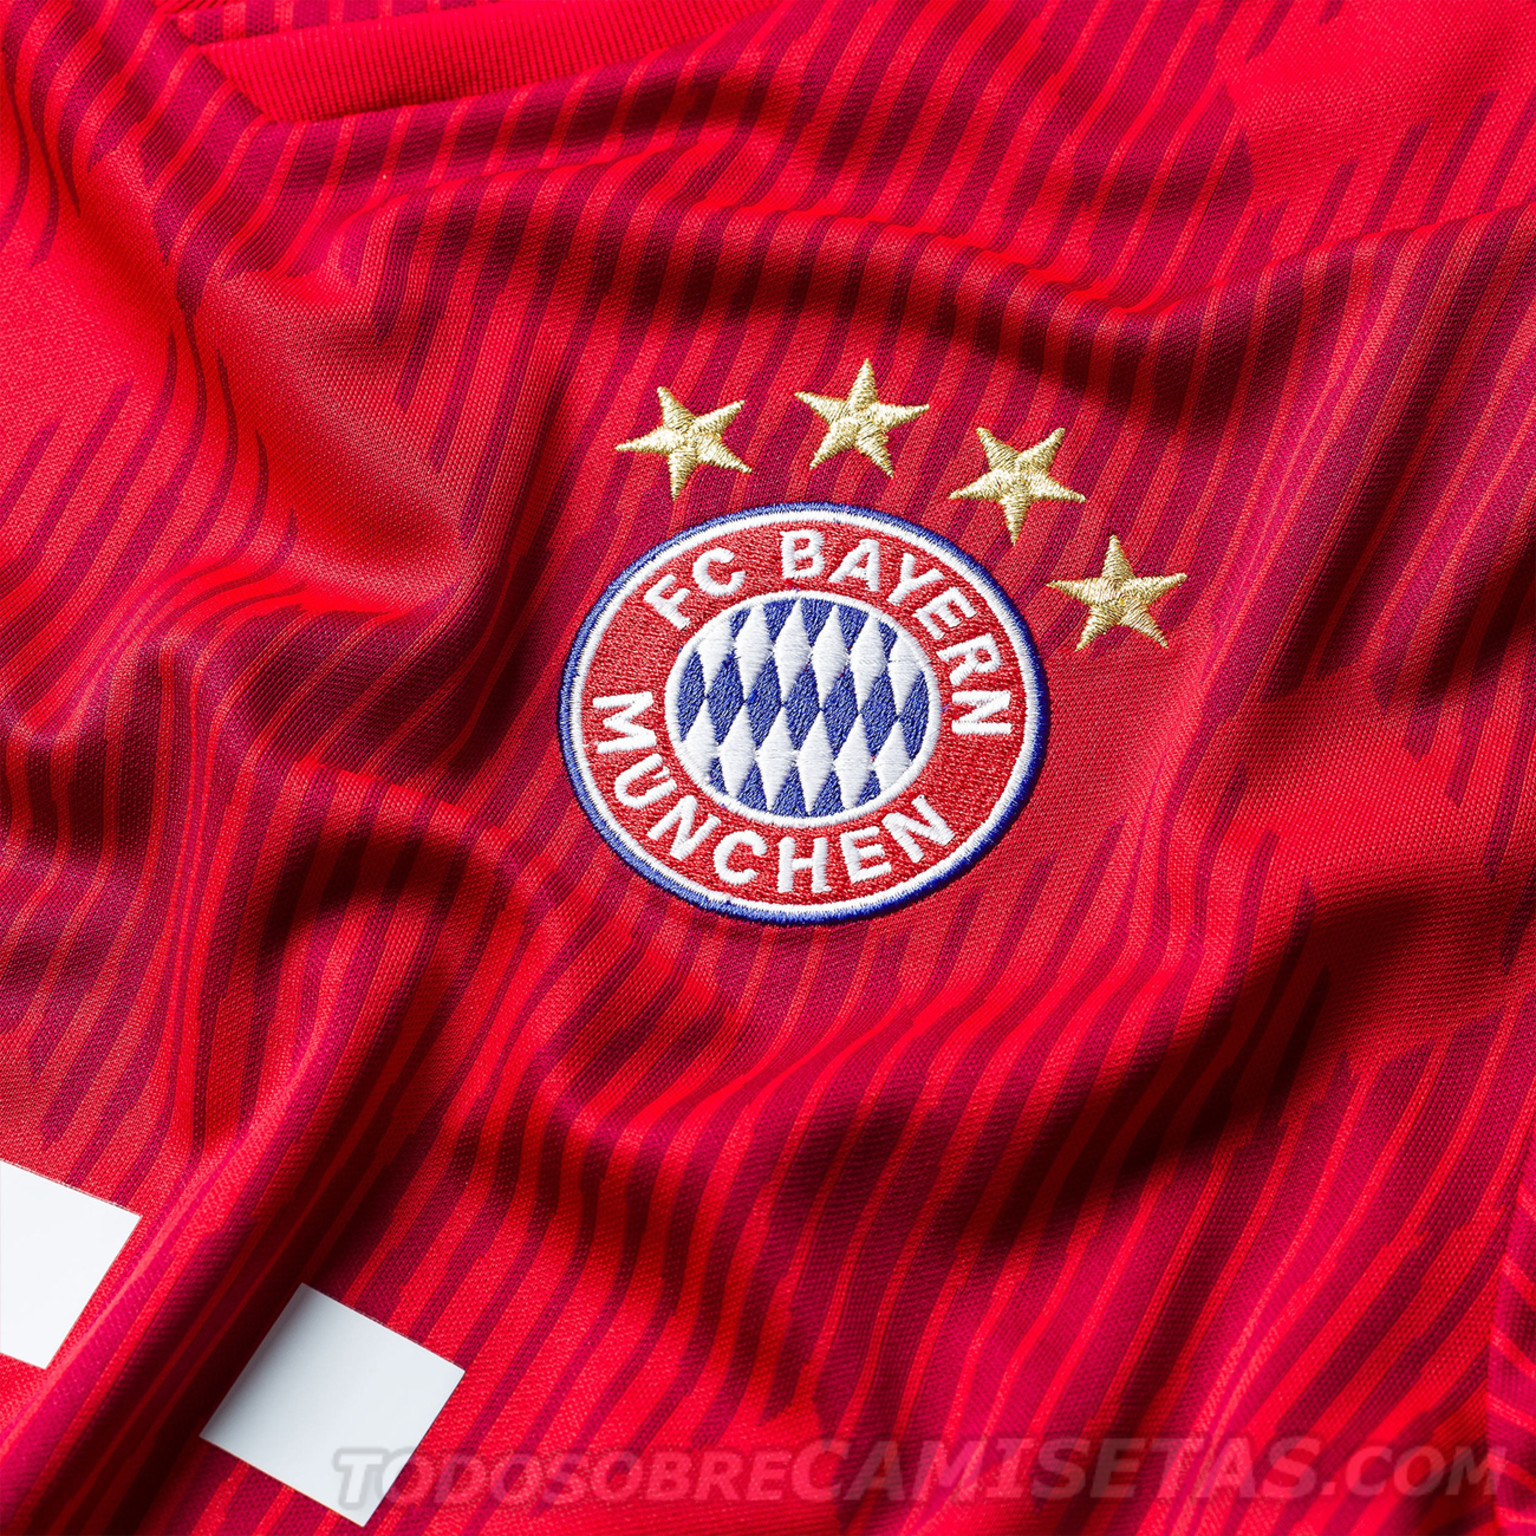 Bayern-Munich-2018-19-adidas-new-home-kit-10.jpg